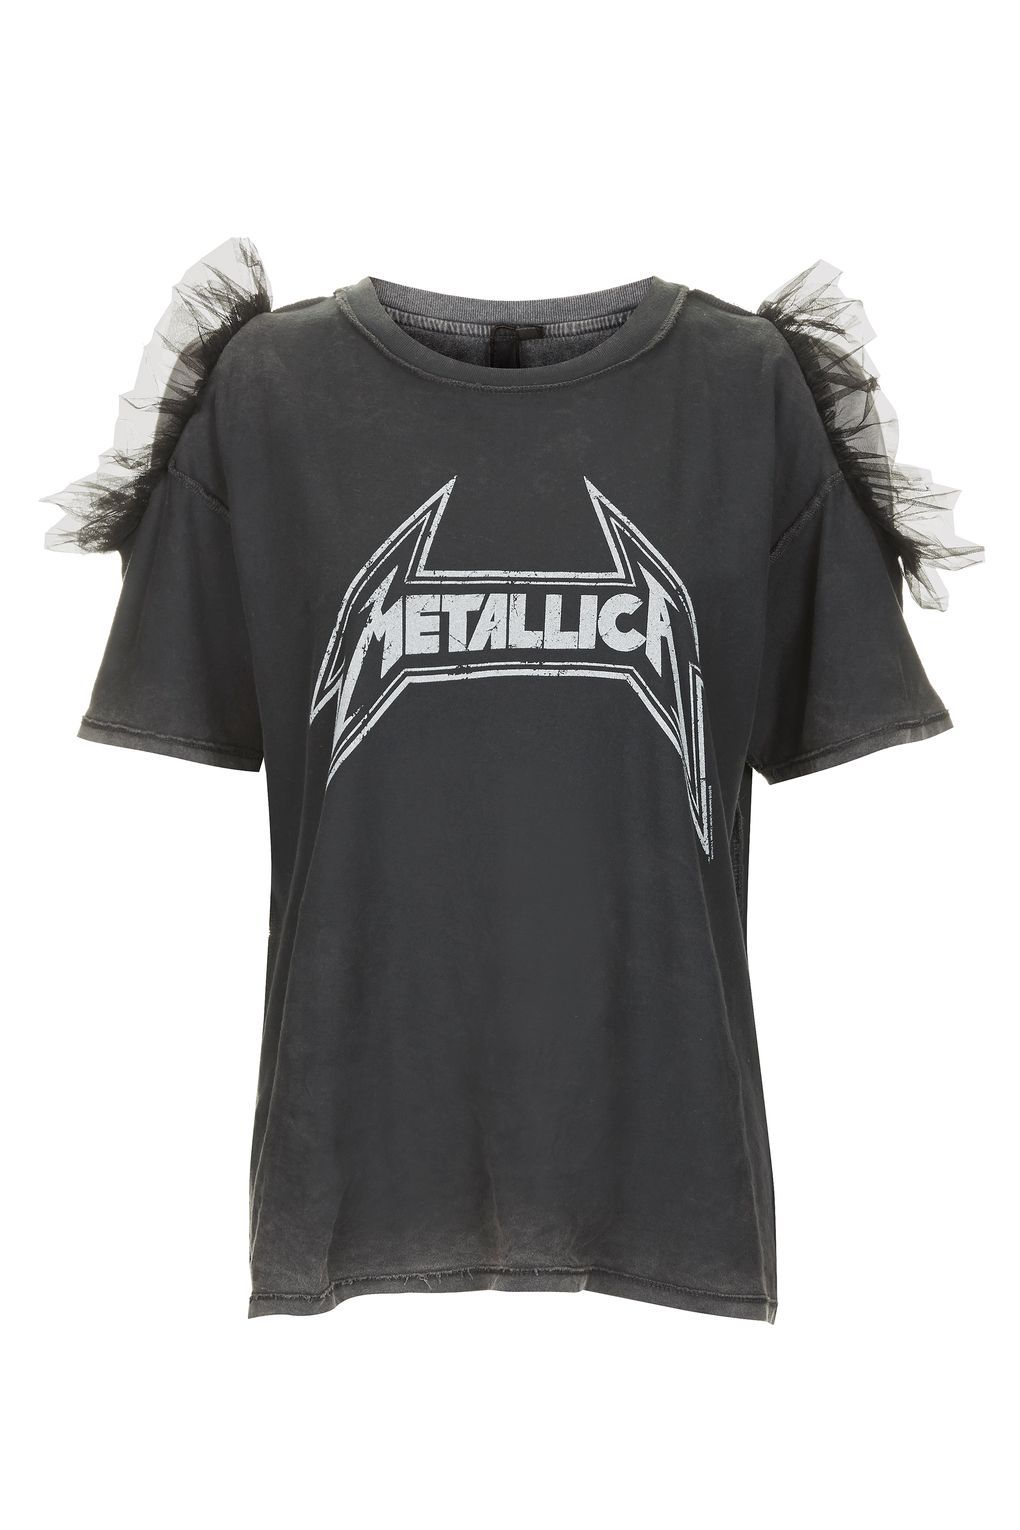 07cabf4aa Metallica Tulle T-Shirt by And Finally - New In- Topshop Europe